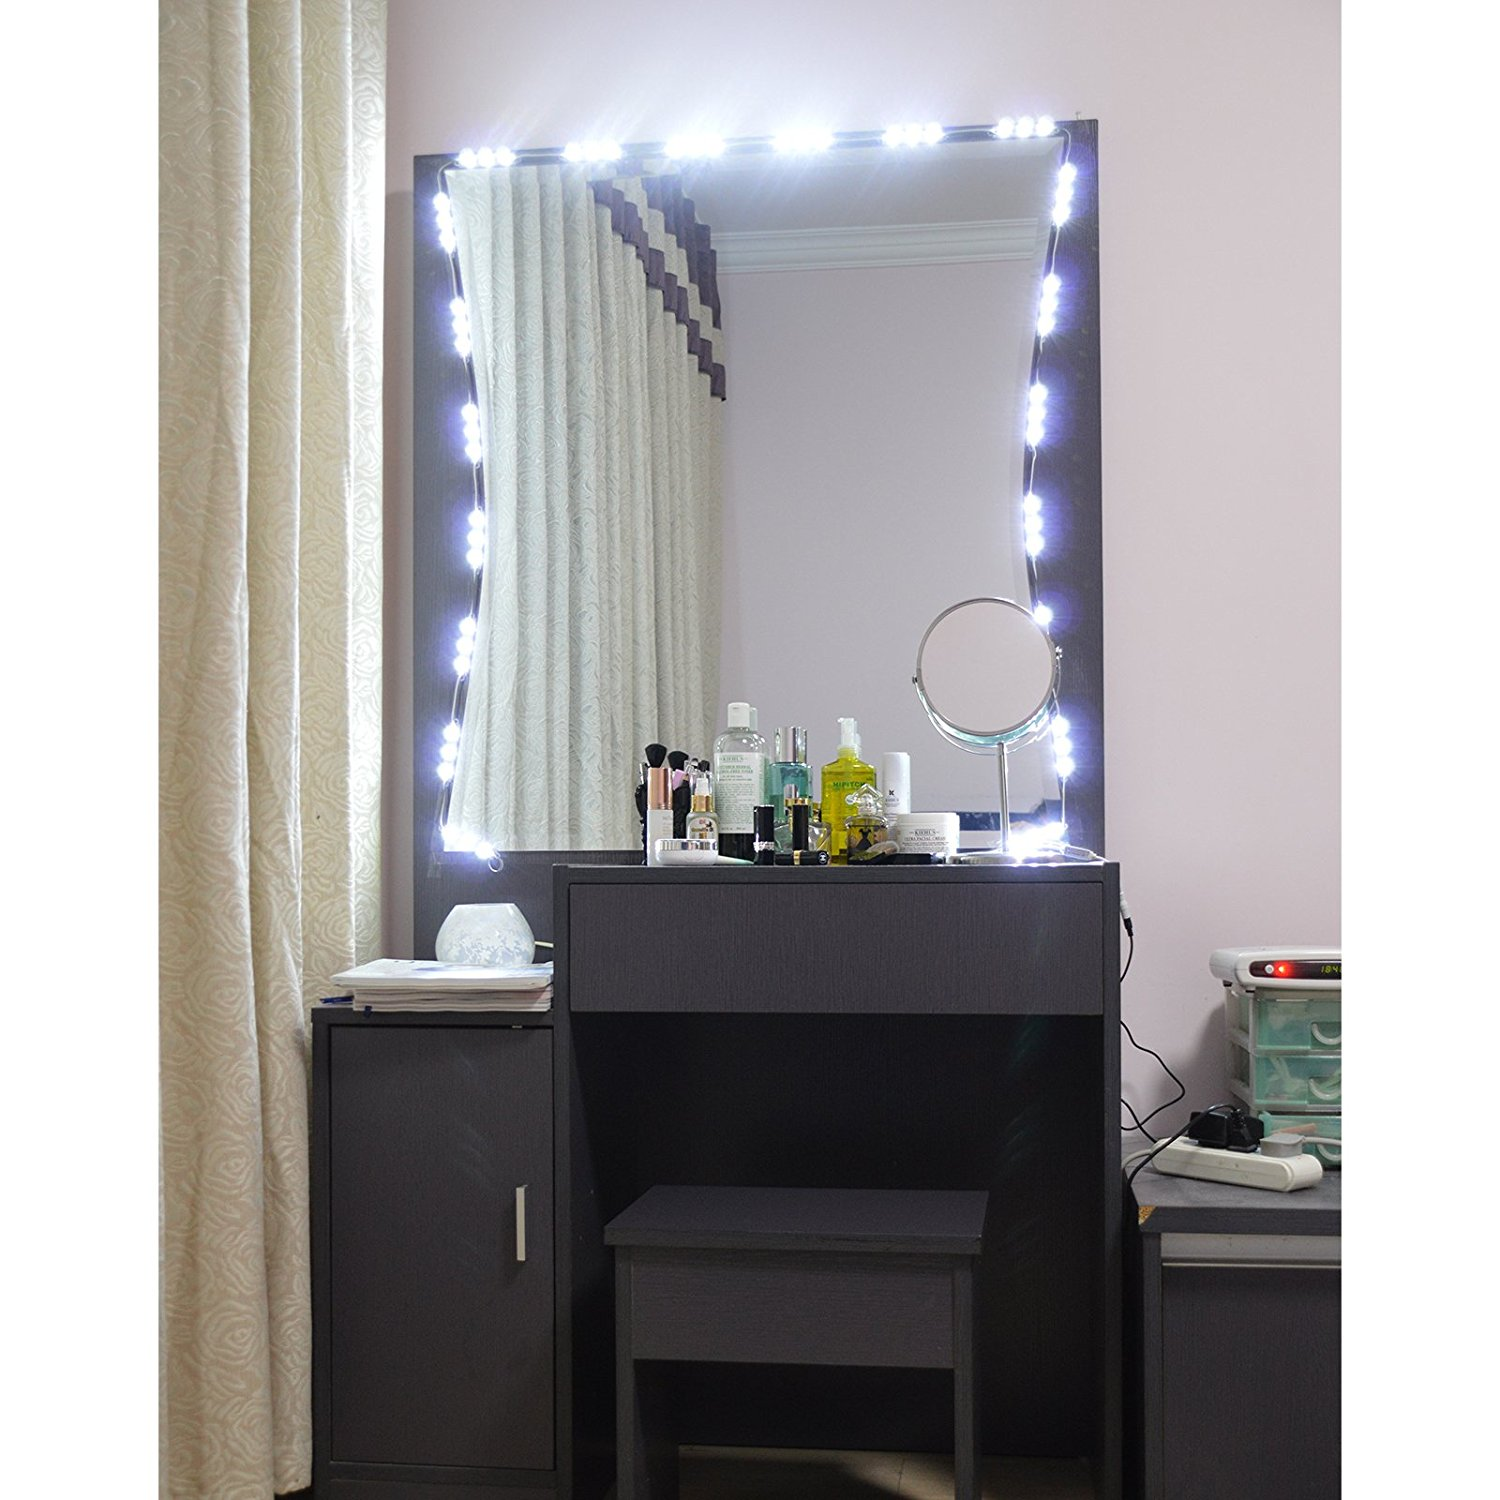 Diy ikea alex vanity blushing in hollywood diy vanity lighted mirror using led lights from amazon aloadofball Image collections